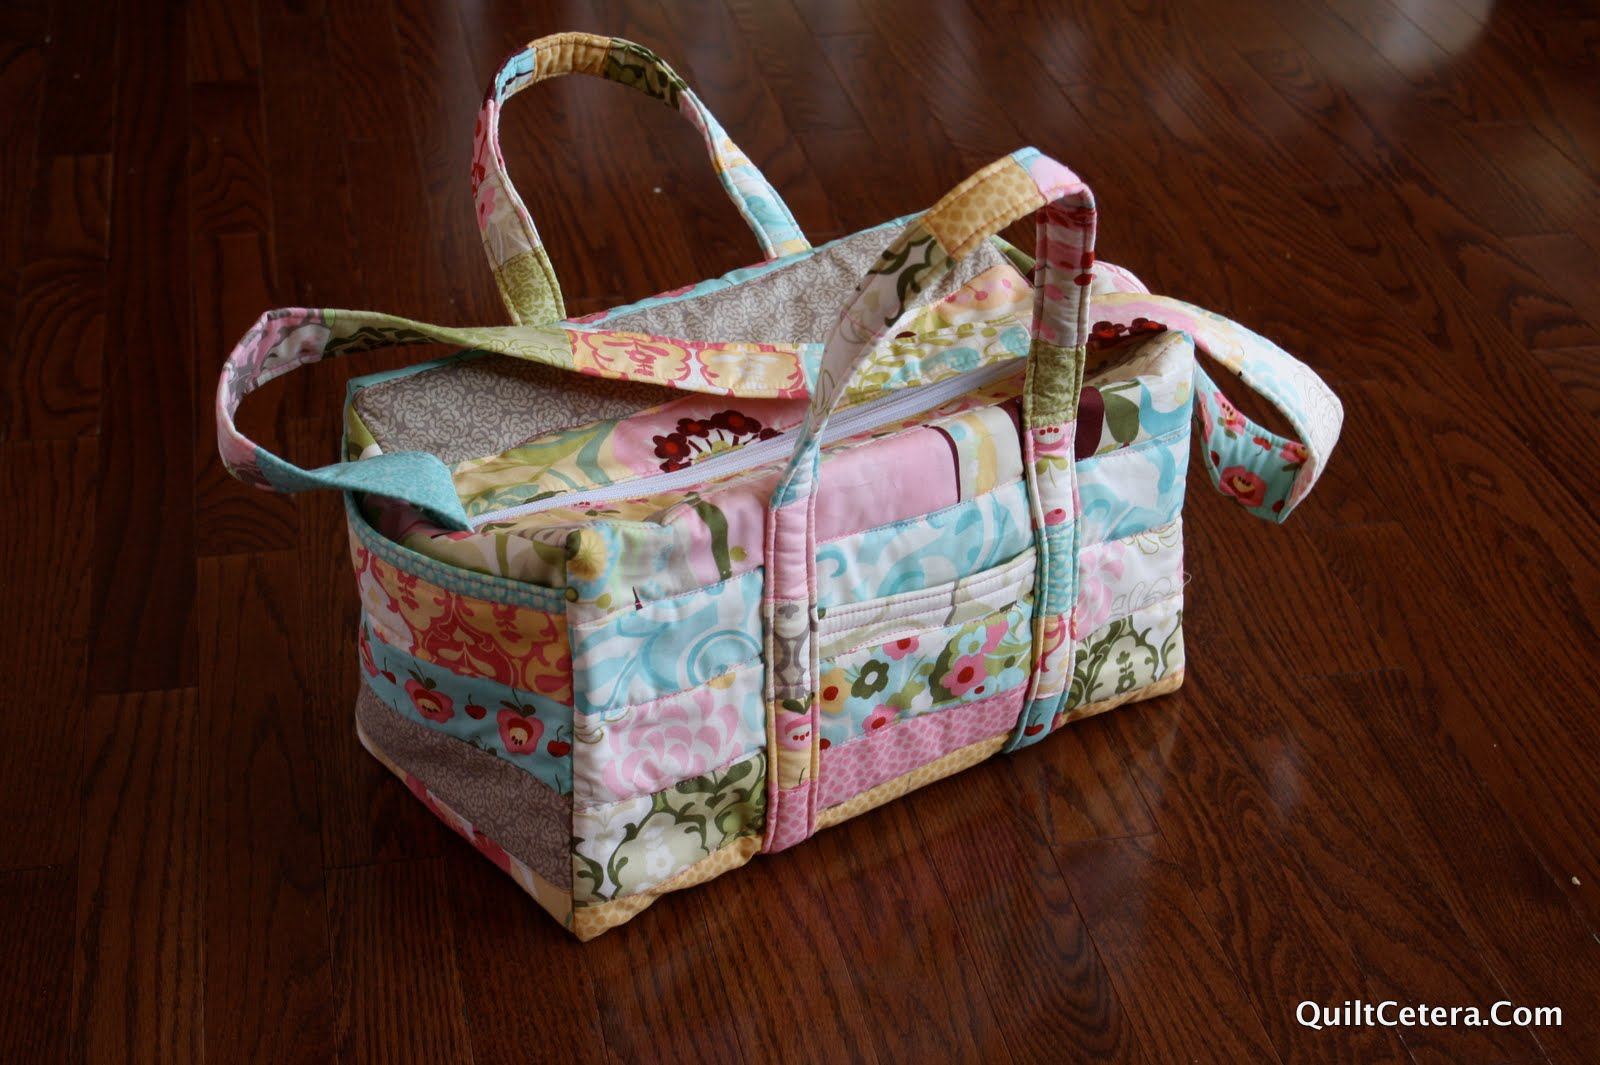 Moda Bake Shop: Baby On The Go Diaper Bag